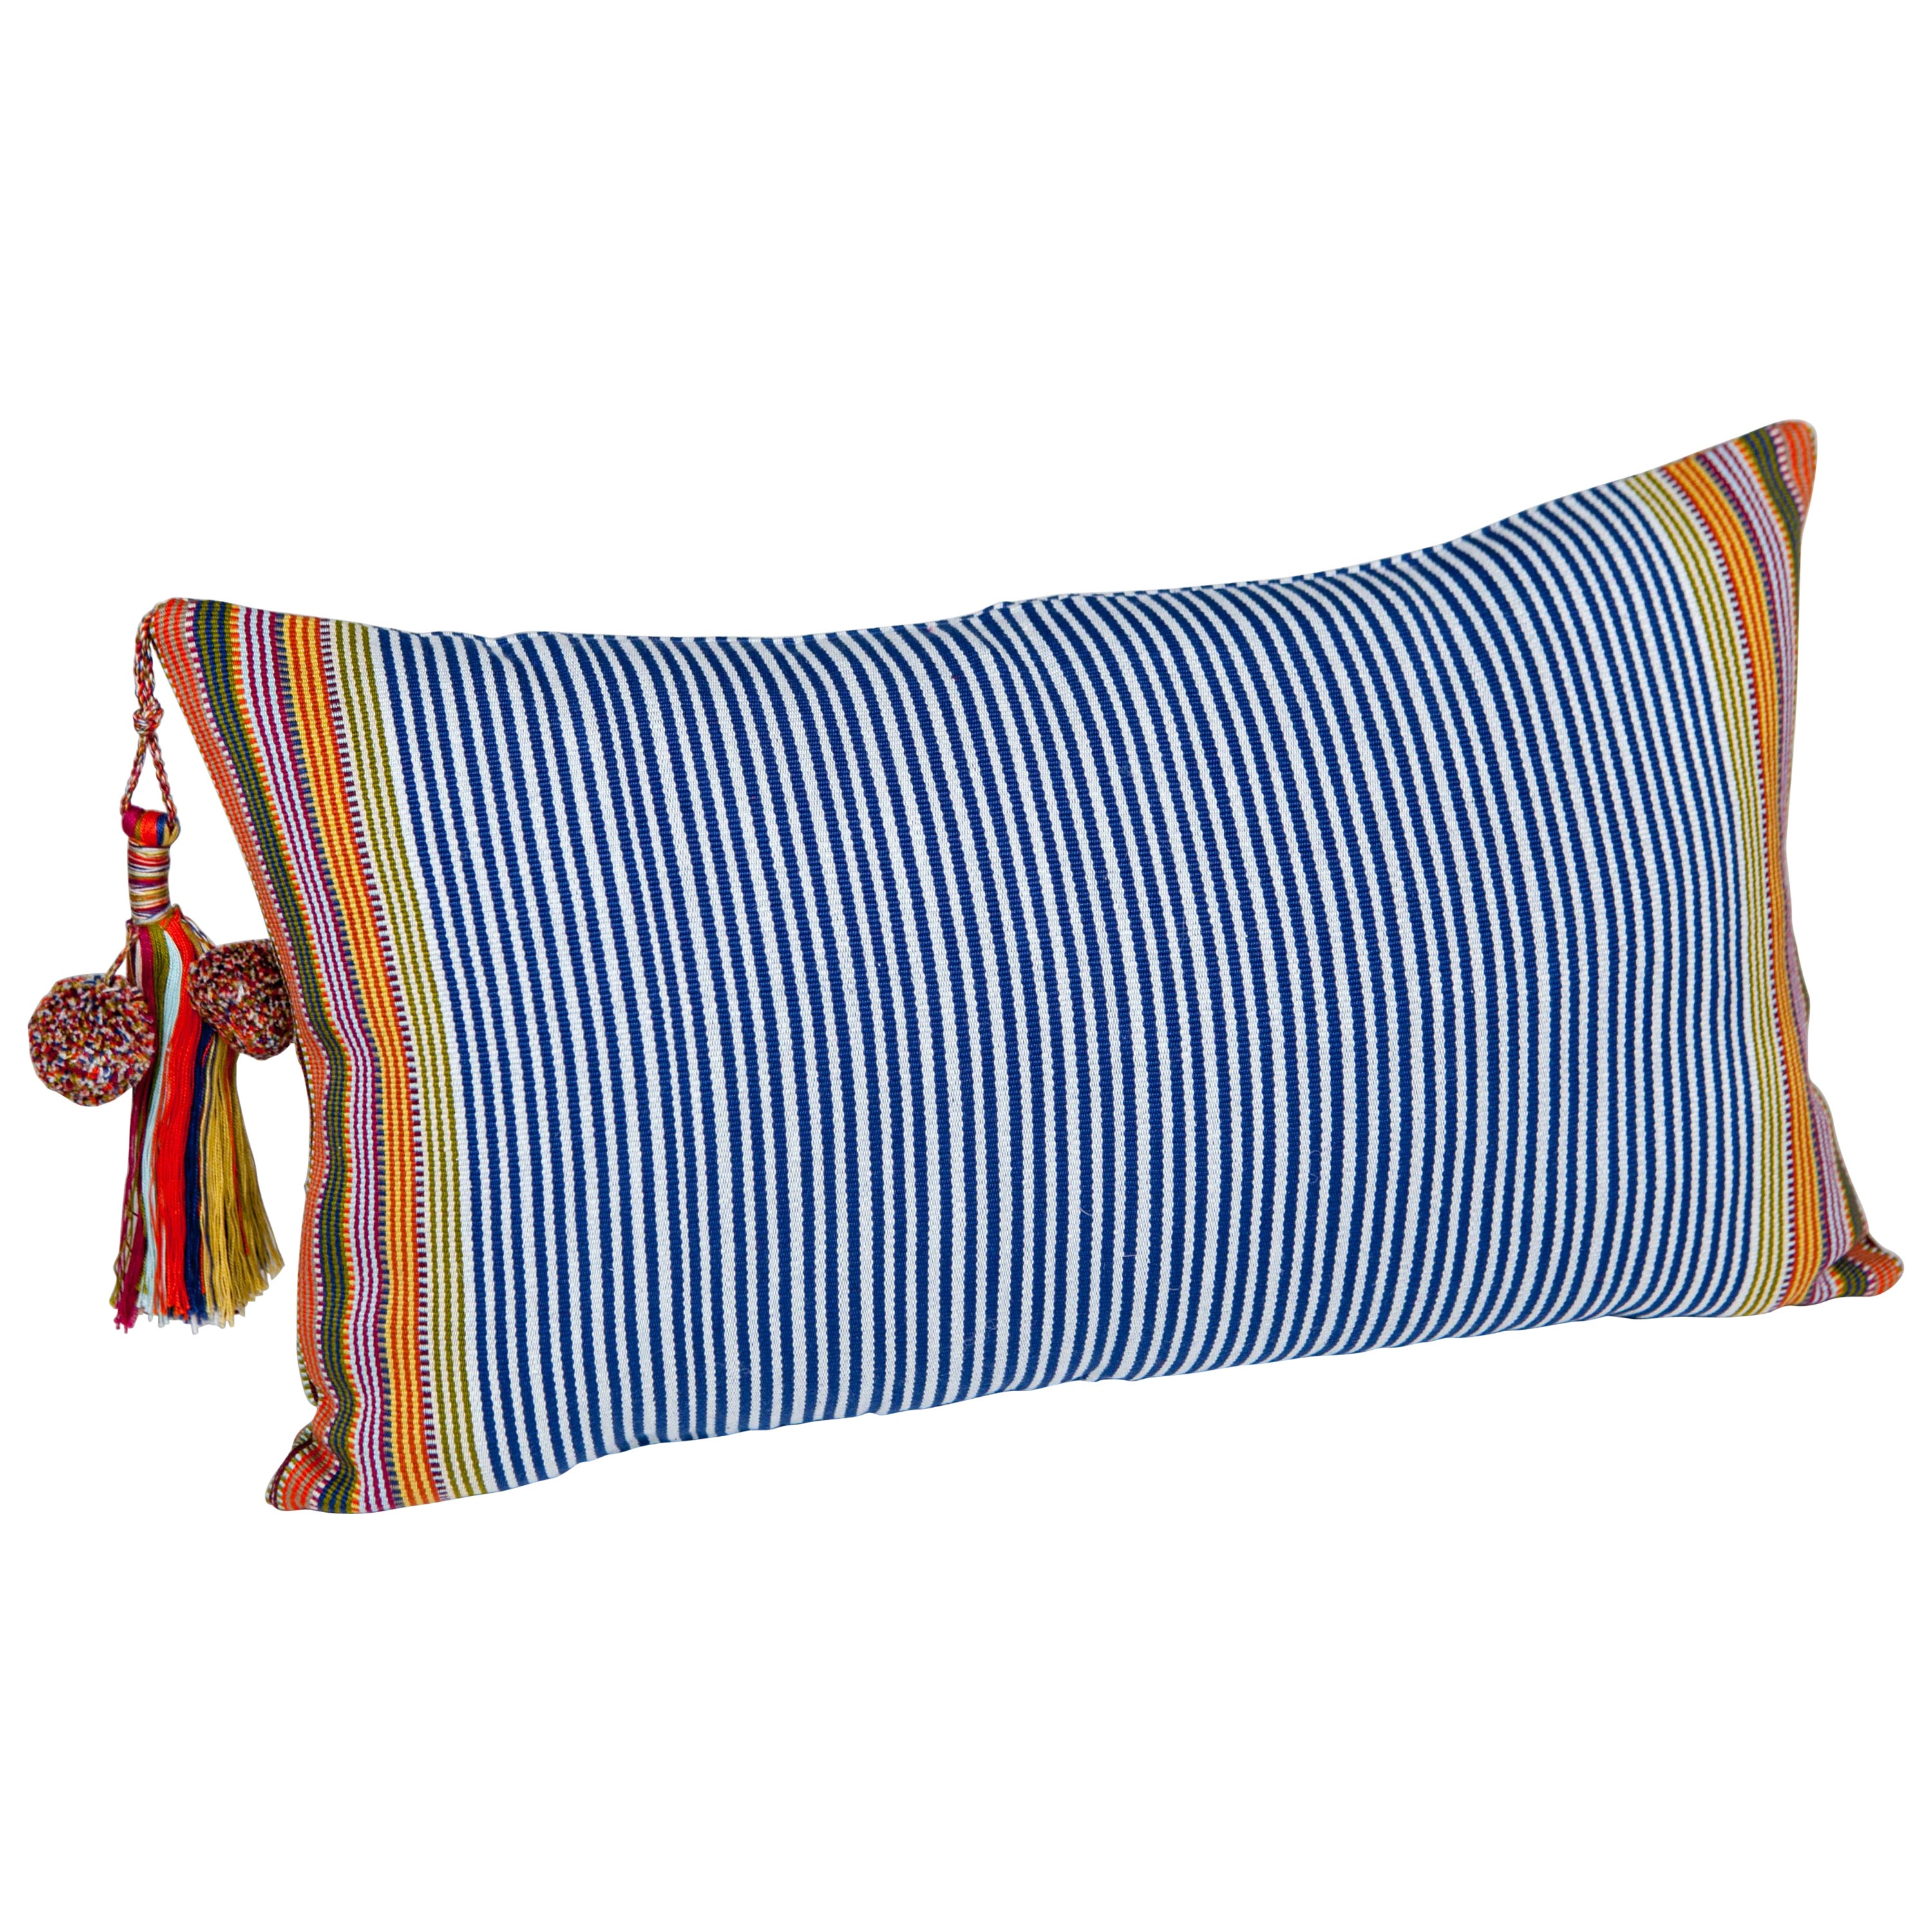 Handwoven Fine Cotton Pillow Blue Stripes, MultiColor Trim and Tassel, In Stock